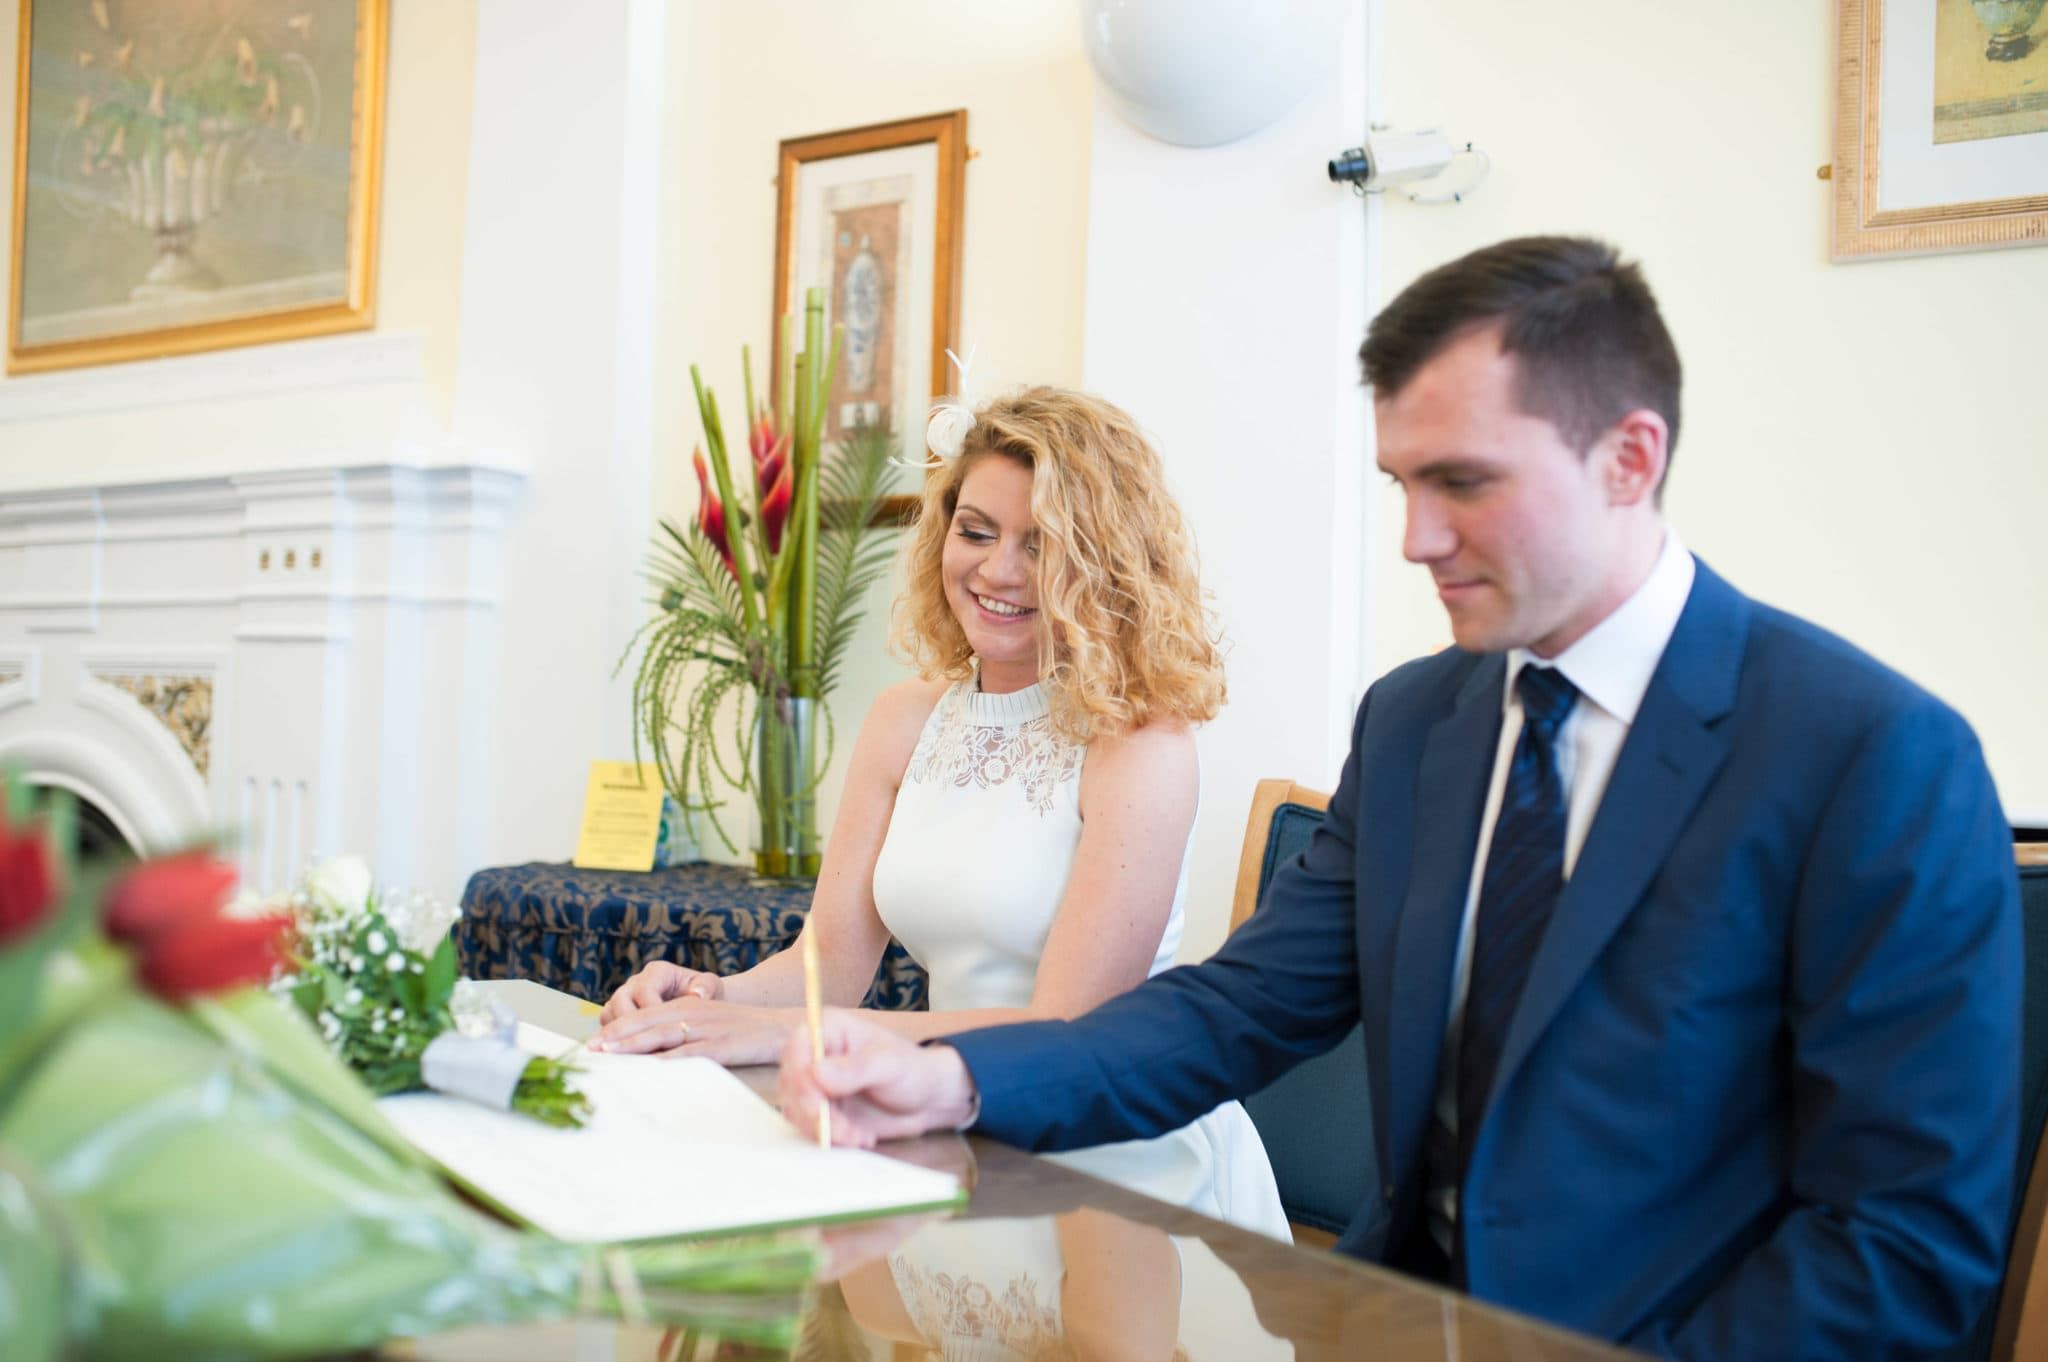 bride and groom Bromley on Bow Registry office, London UK Wedding photography ceremony room with the guest, register signing